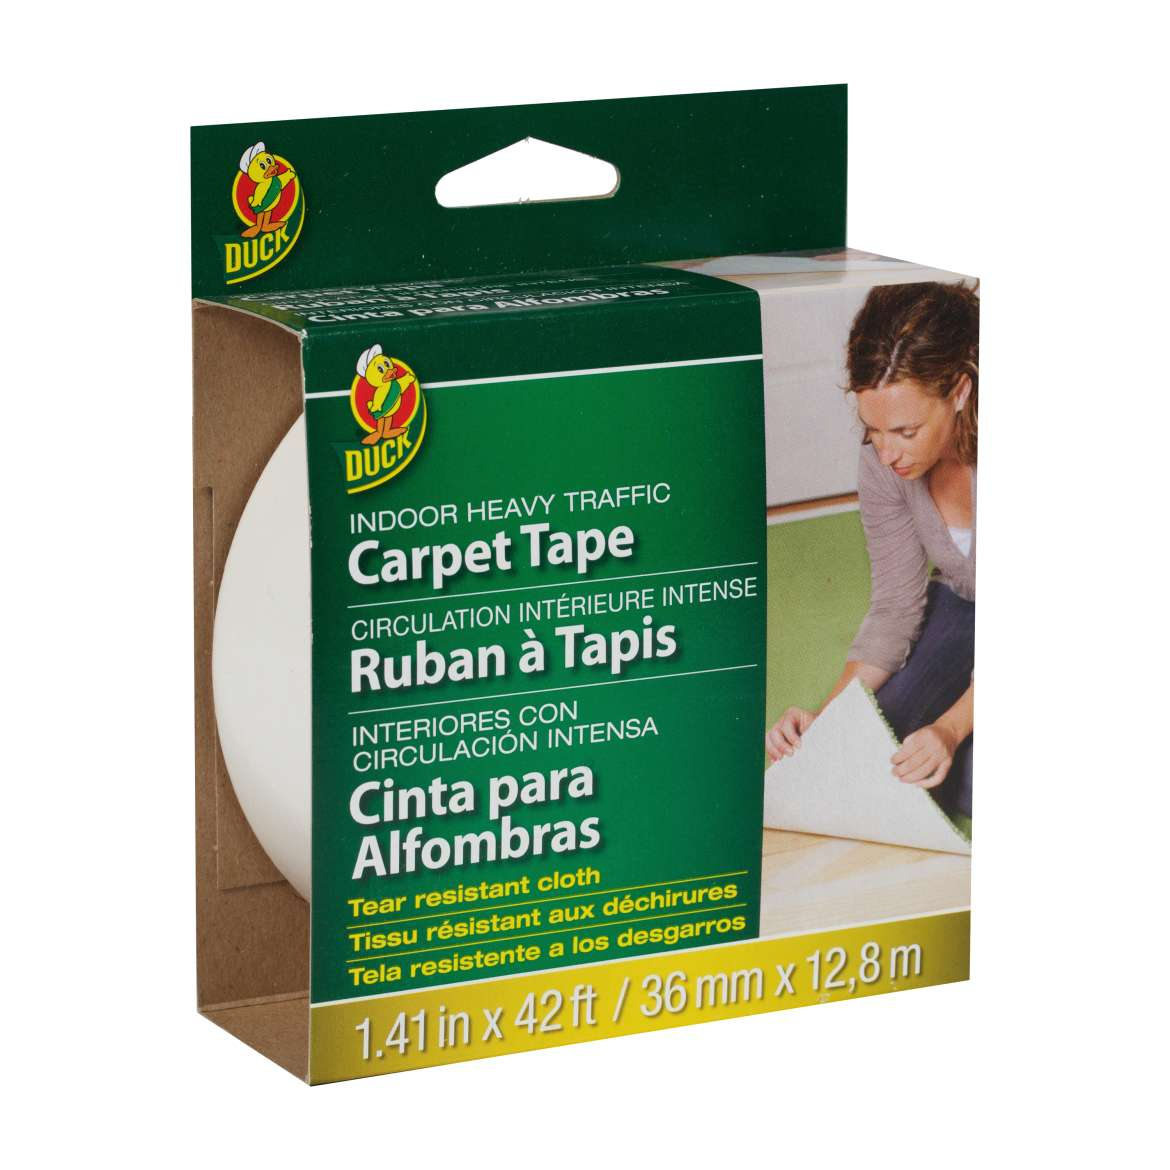 Heavy Traffic Carpet Tape Image